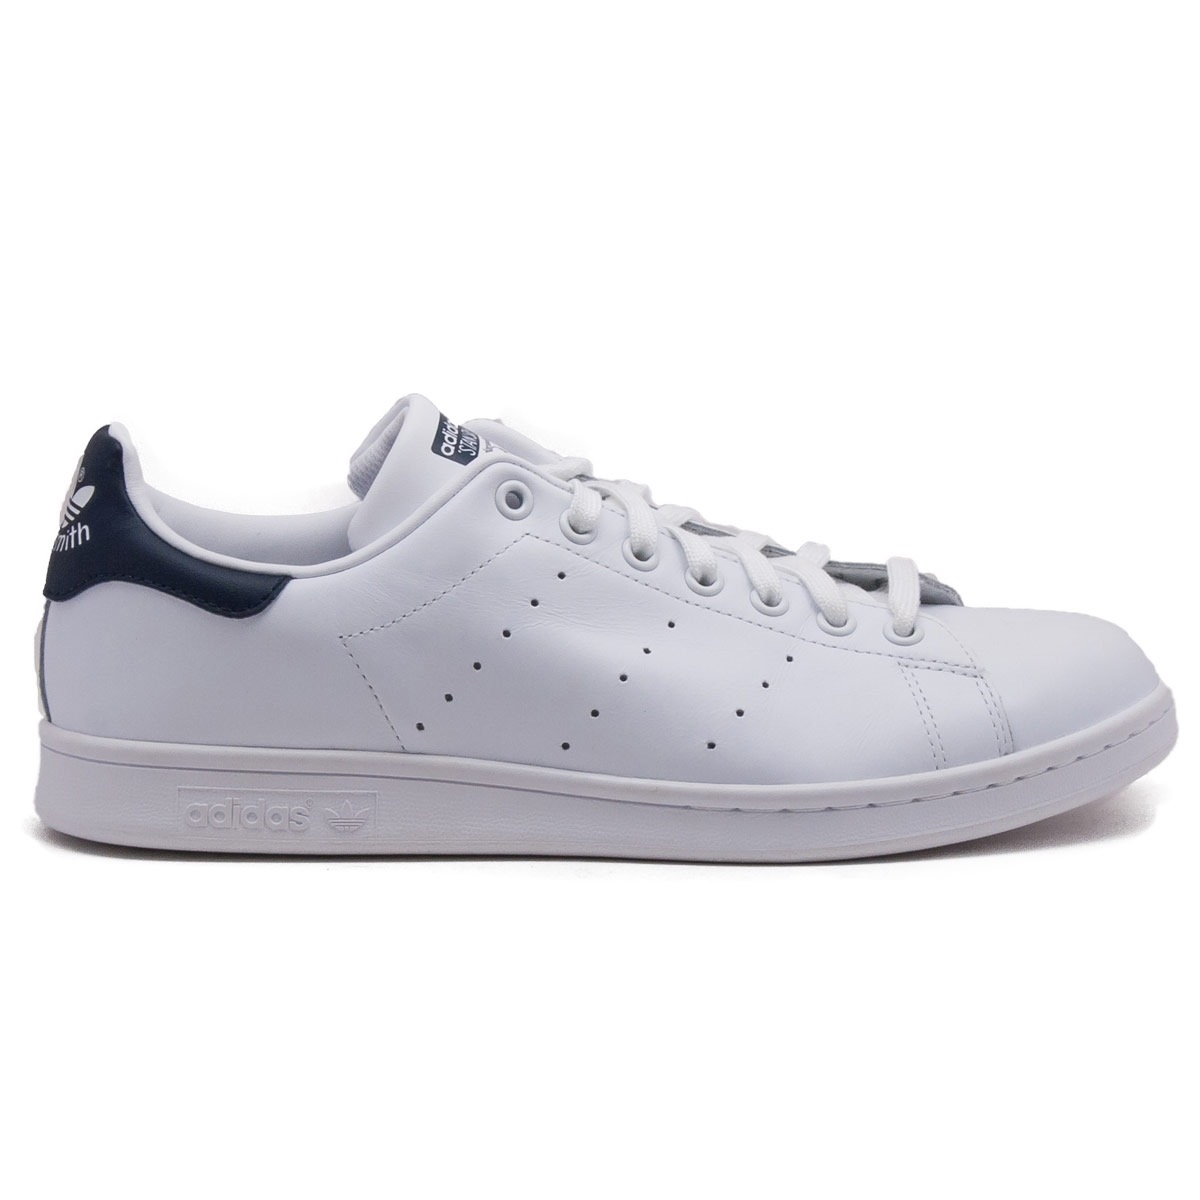 adidas originals clean bianca leather stan smith trainers